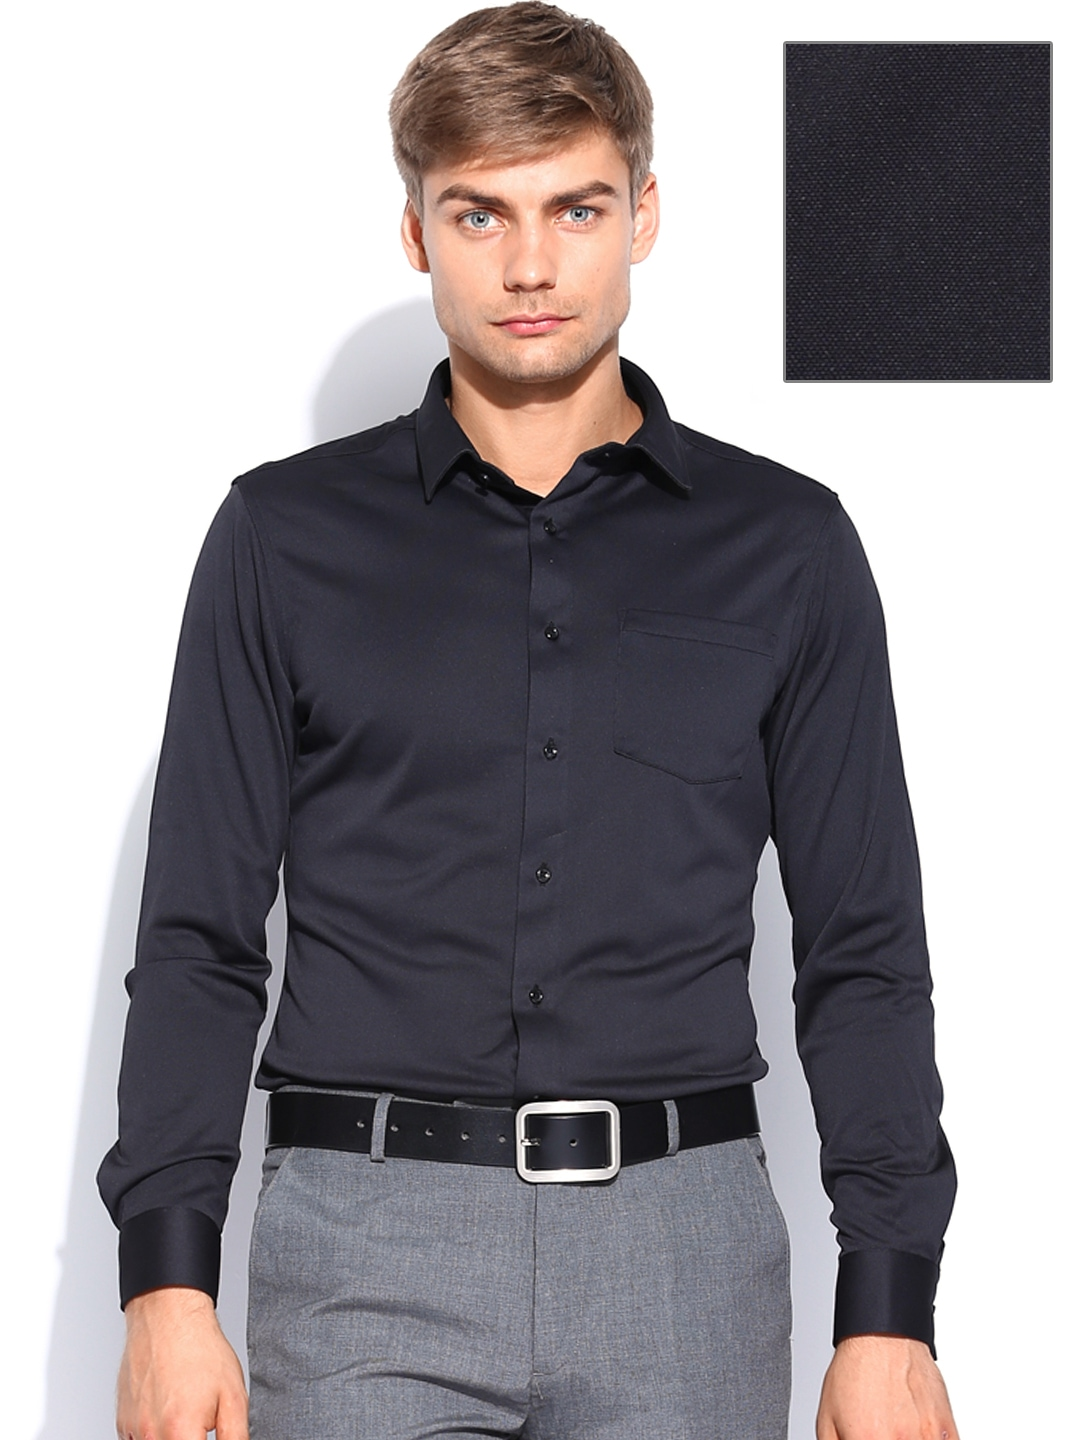 Find great deals on eBay for arrow slim fit dress shirt. Shop with confidence.